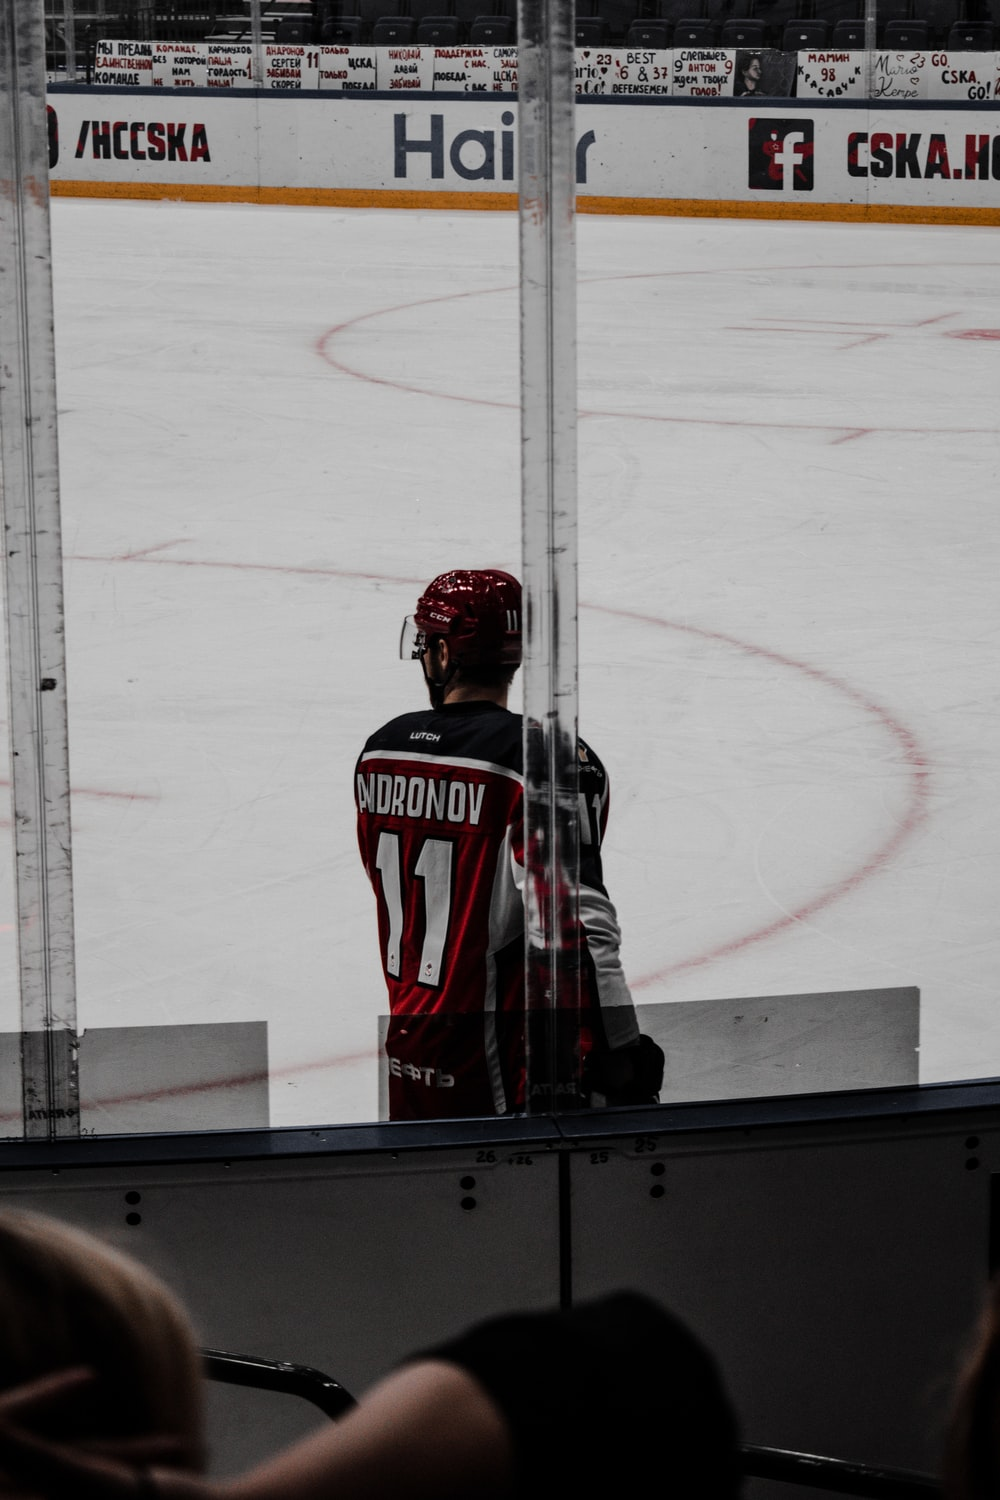 man in red and white jersey shirt and black pants standing on ice hockey field